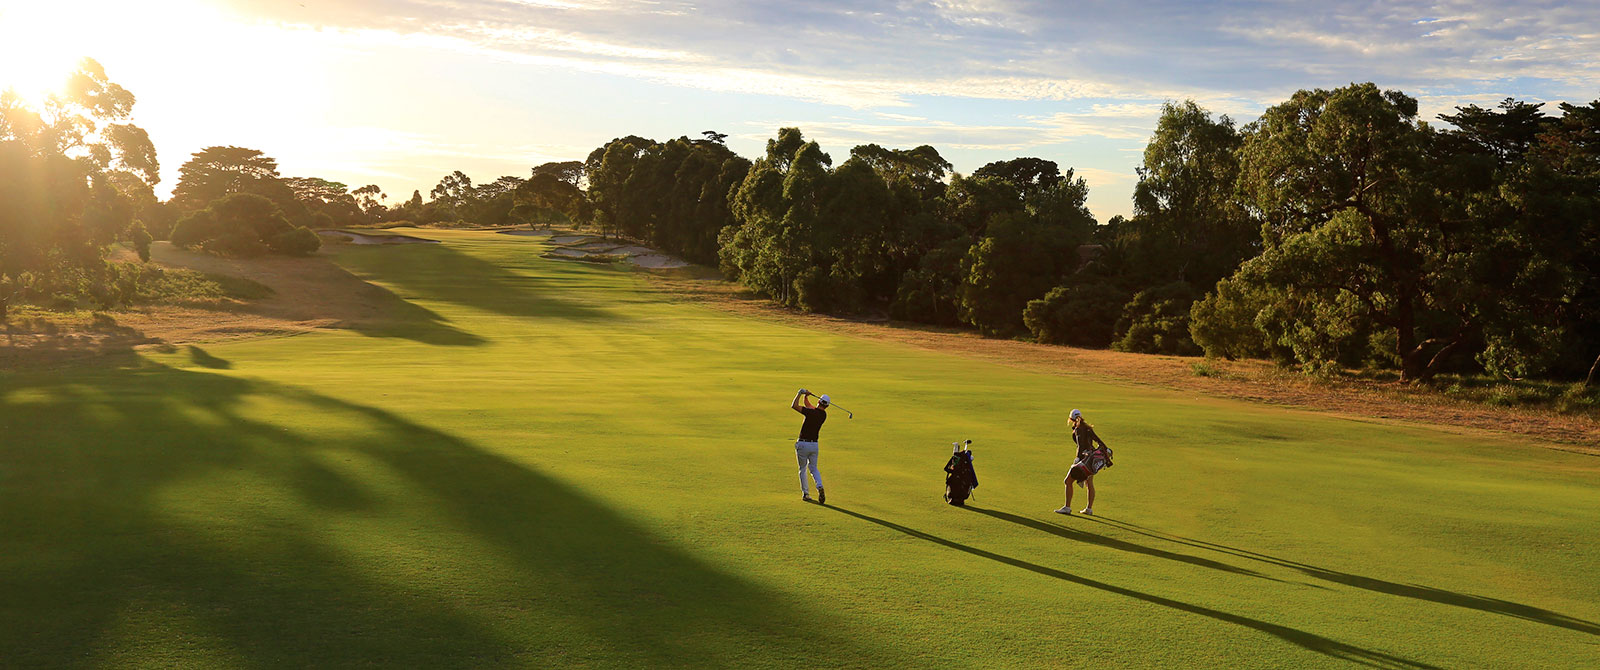 Royal Melbourne Golf Club - Melbourne Sandbelt Golf Courses